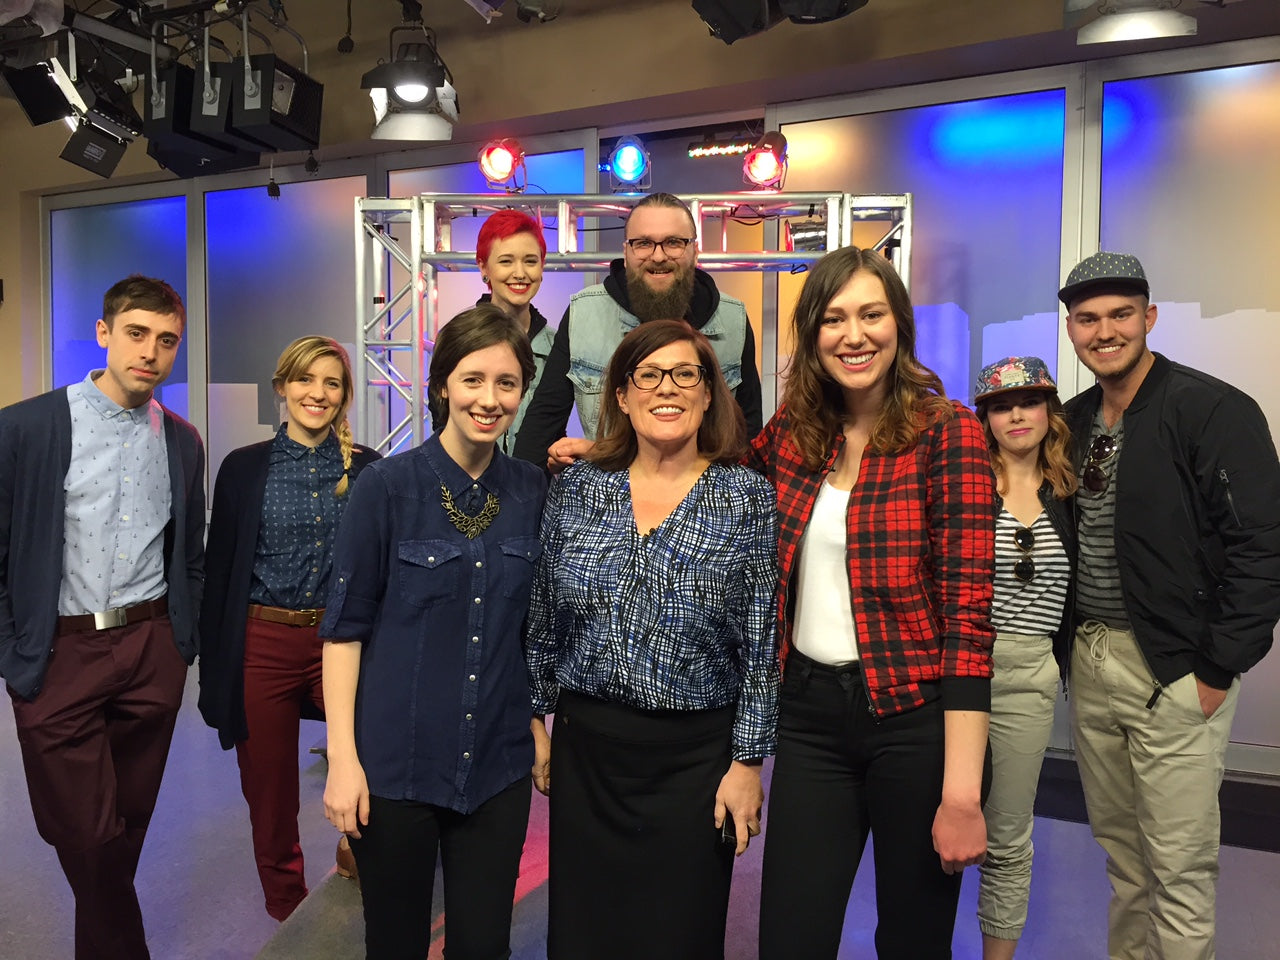 Flannel Foxes on Breakfast Television